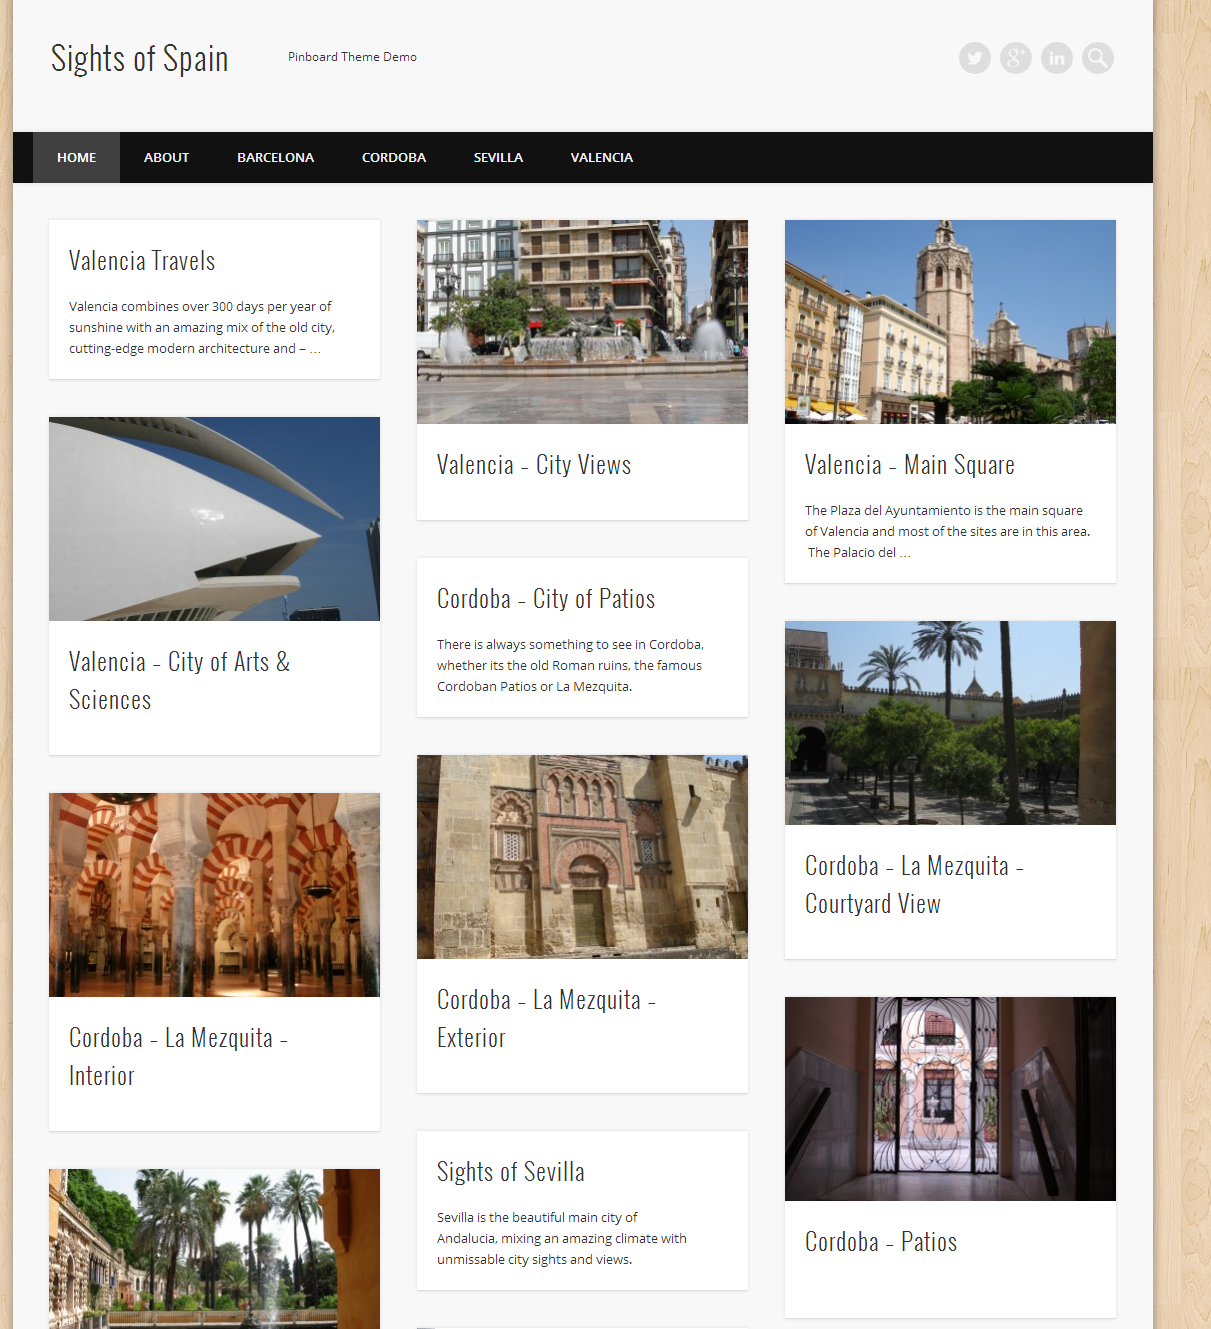 Sights of Spain - Pinboard Theme Demo